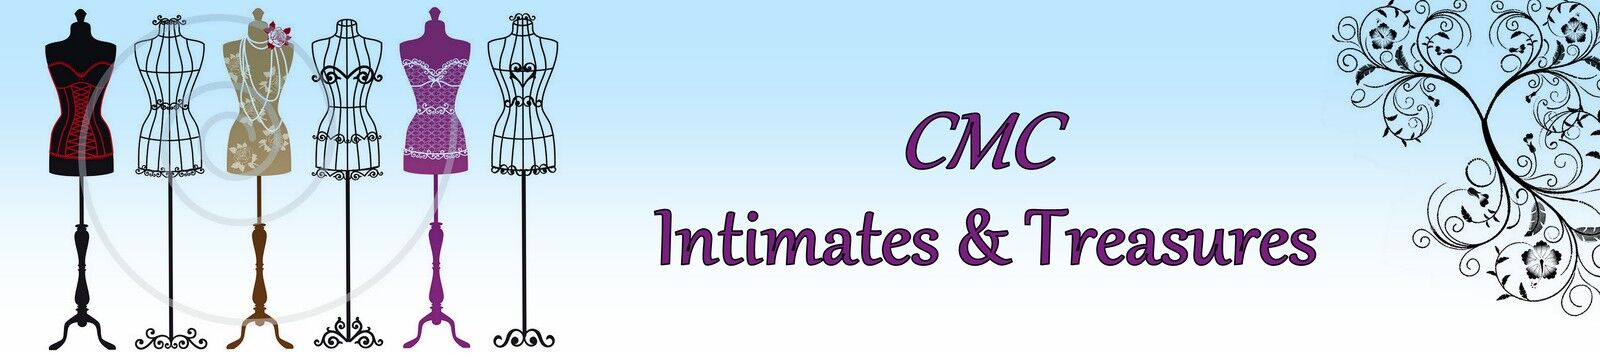 CMC Intimates and Treasures